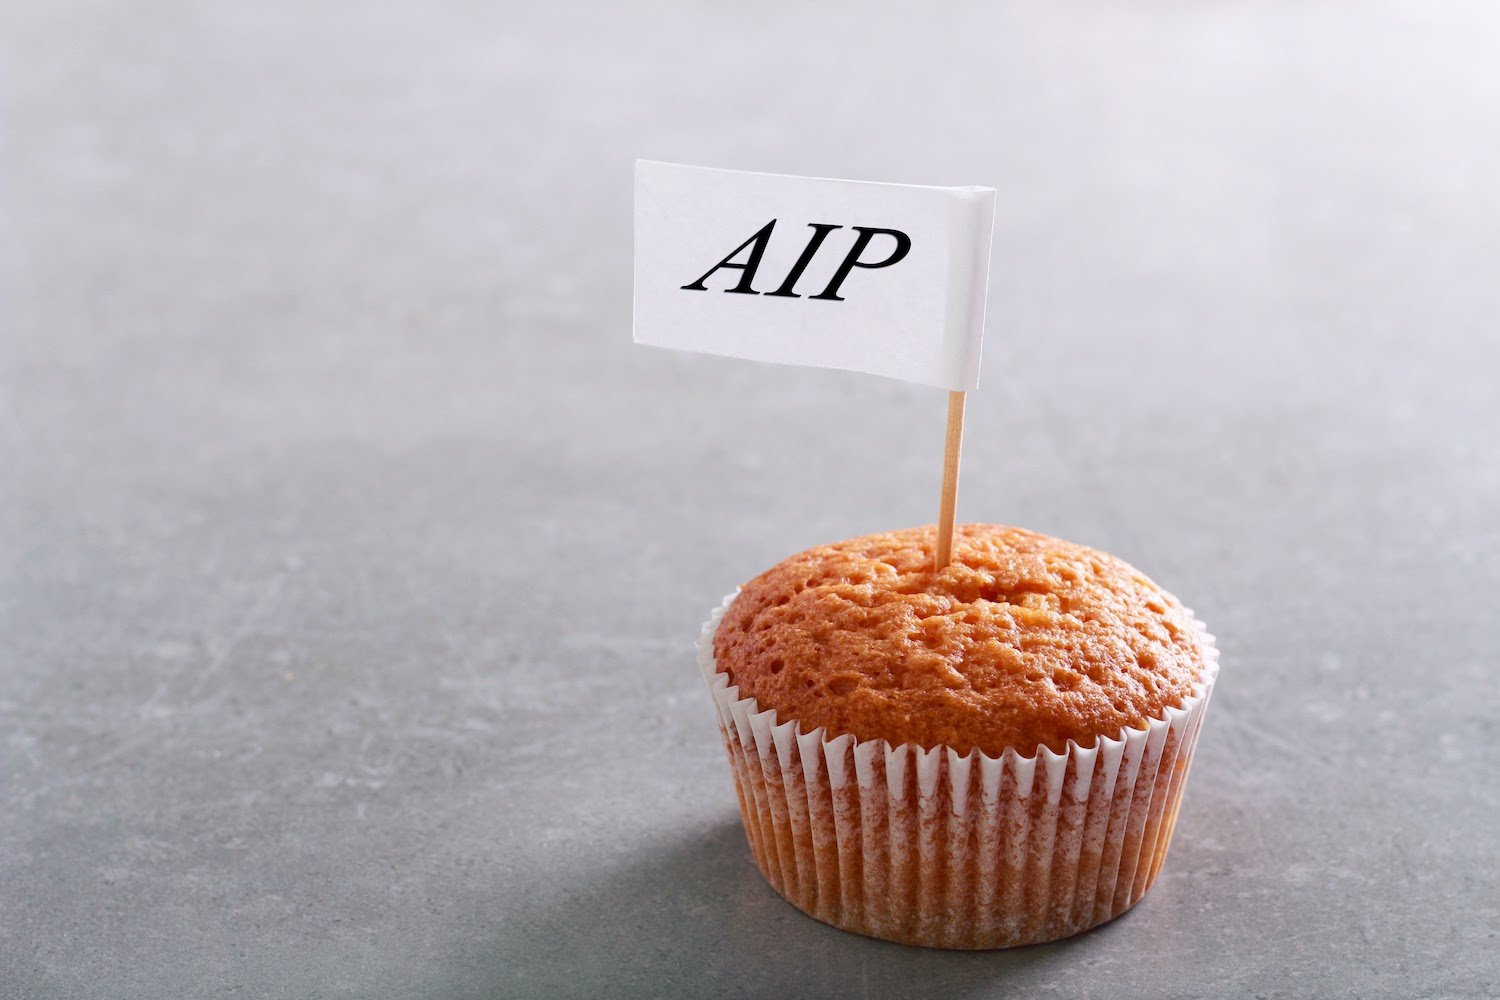 AIP diet: Cupcake with AIP sign